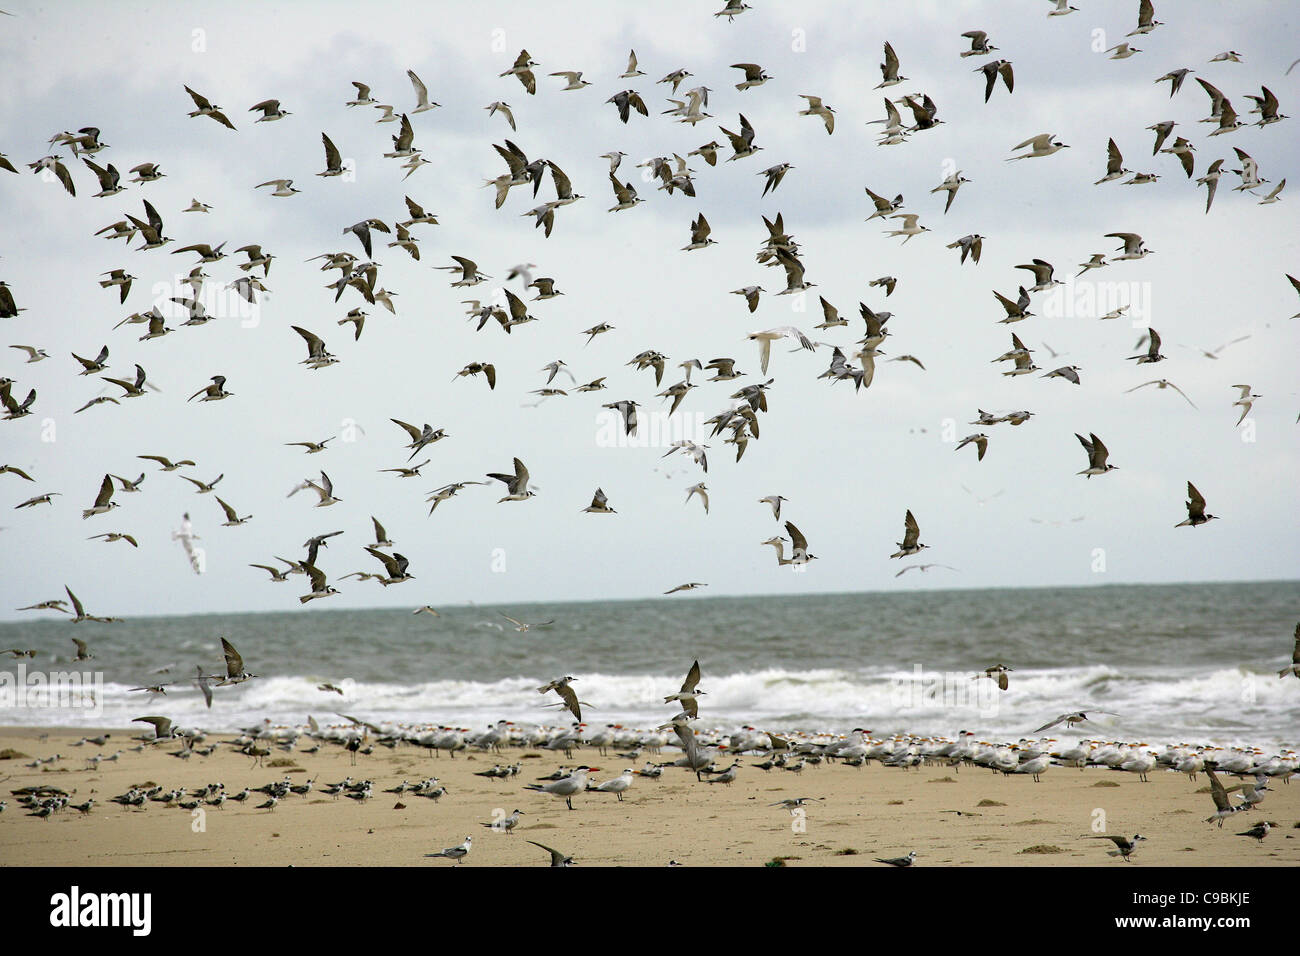 guinea, Bassigos Island, Seagulls flying on the sea shore - Stock Image